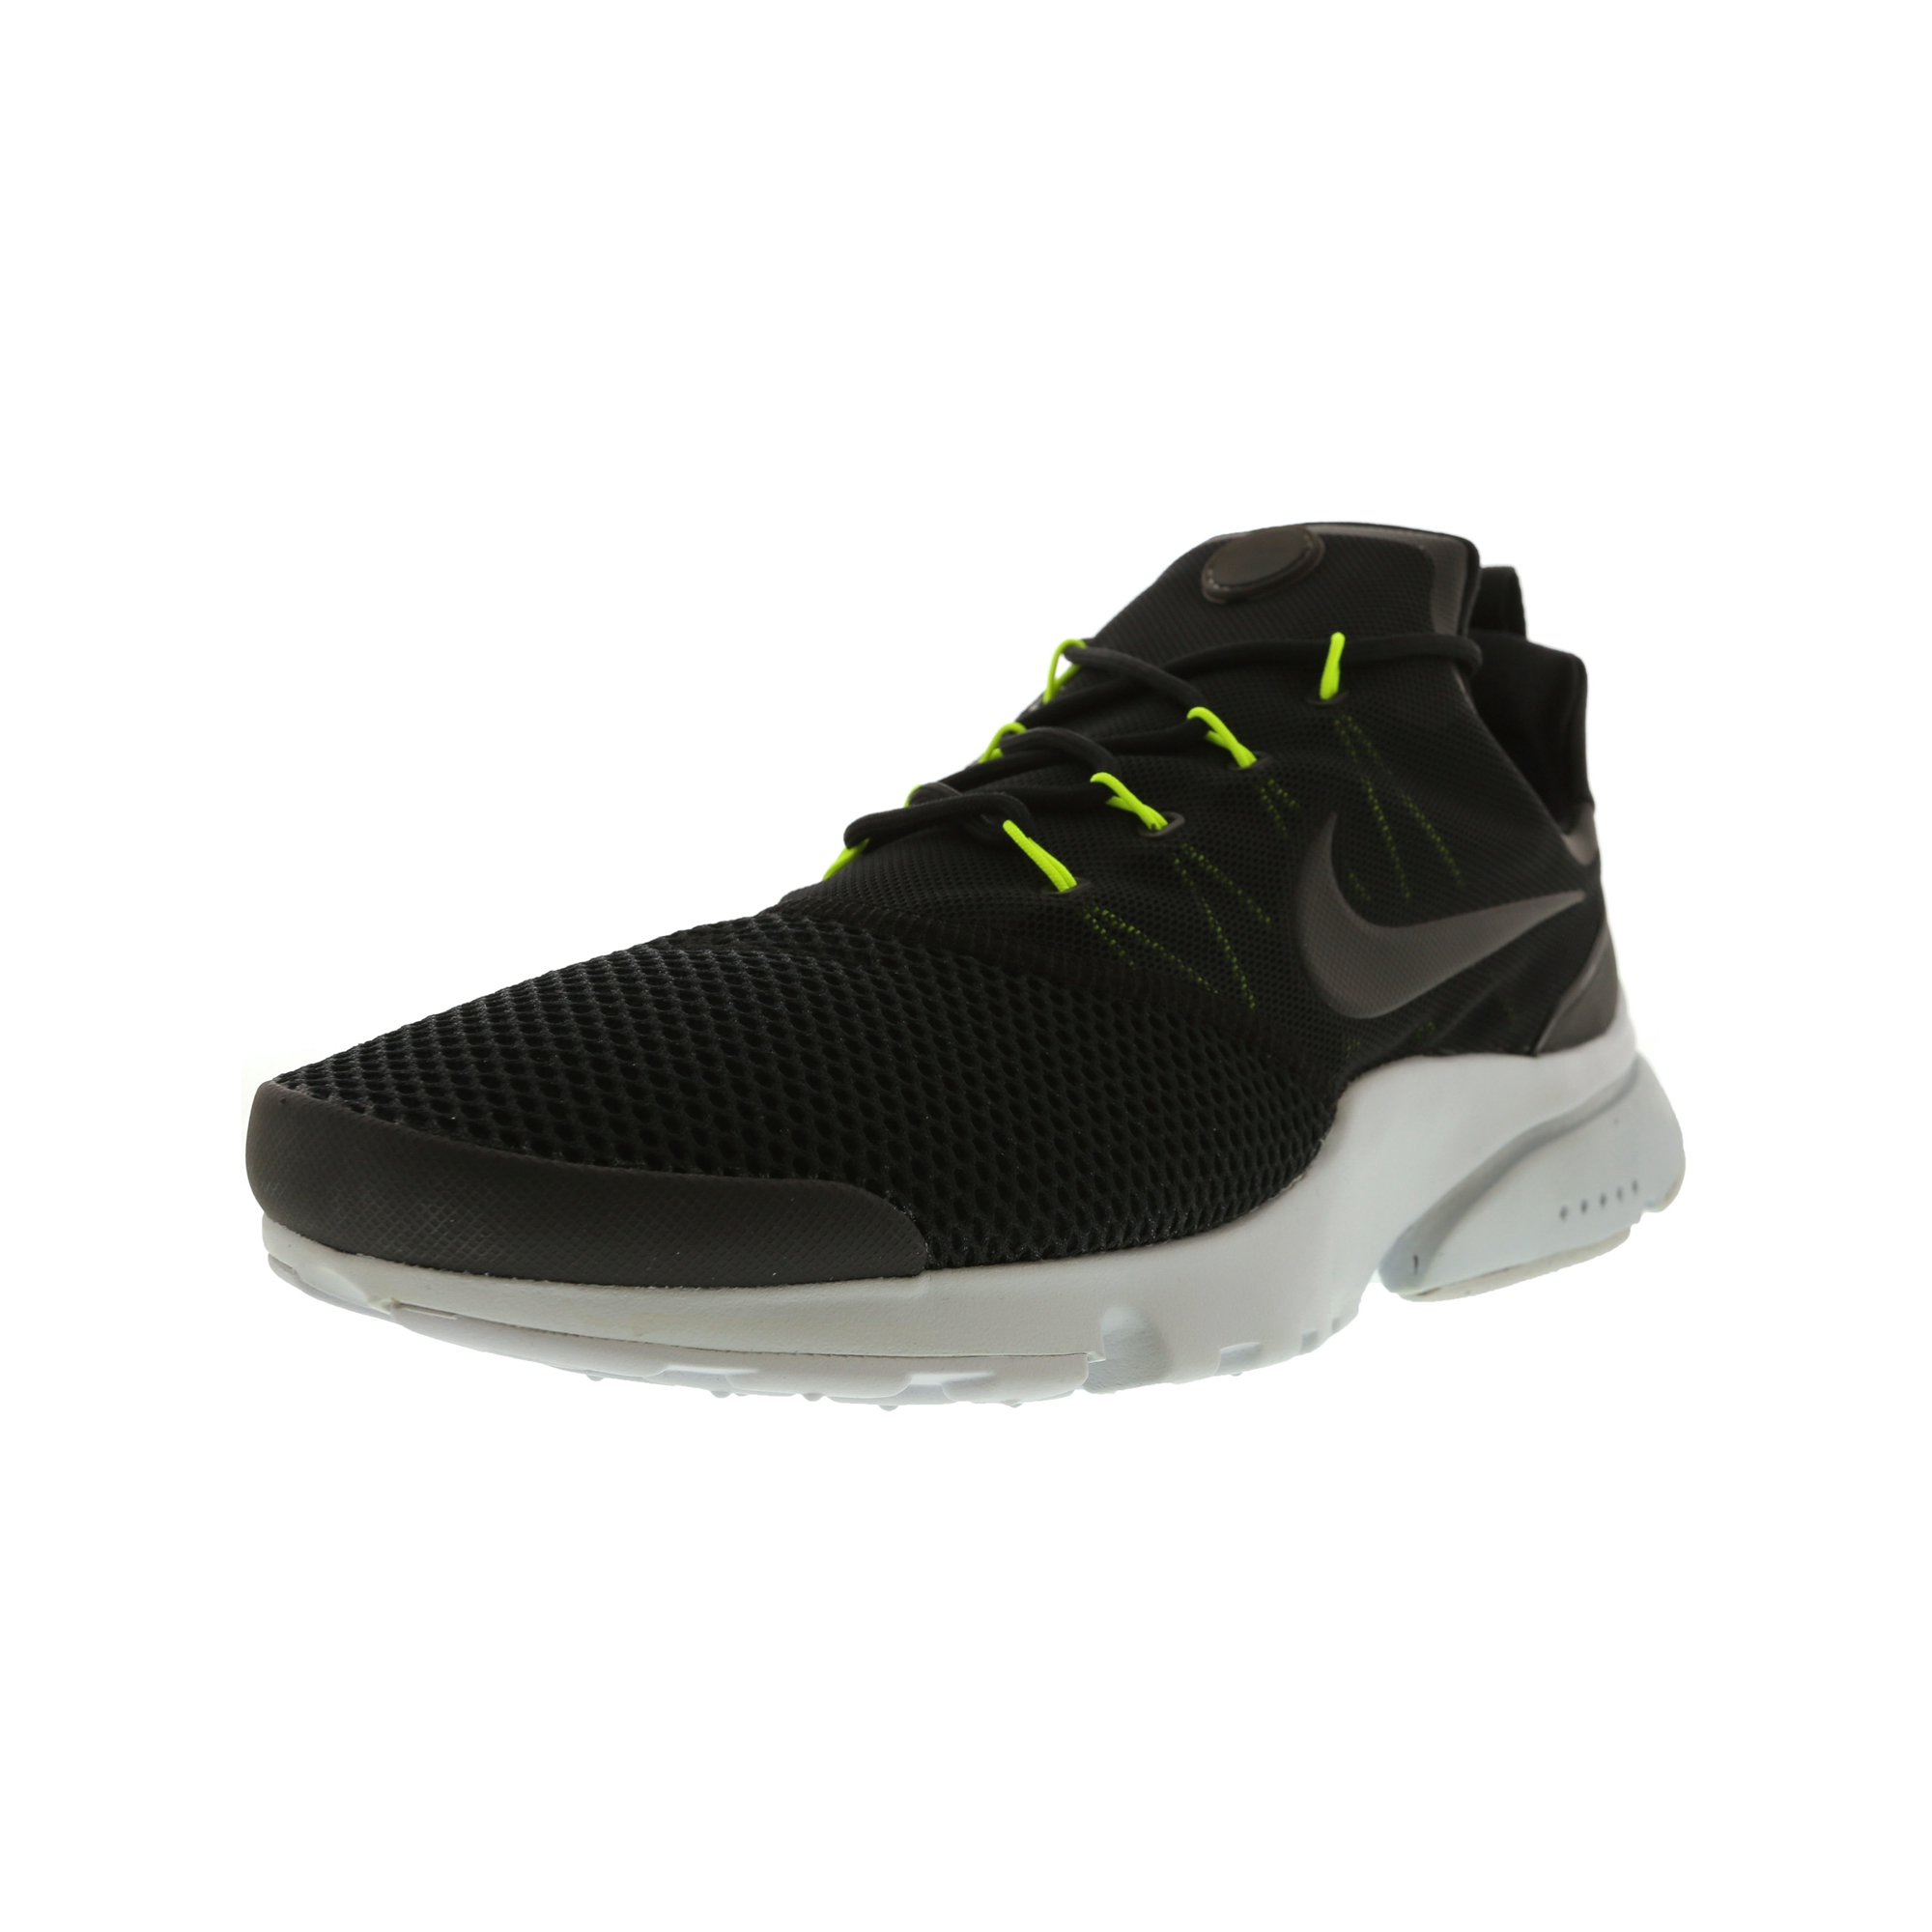 832af0211654a Nike Men s Presto Fly Clay Green   White - Black Ankle-High Mesh Running  Shoe 8.5M